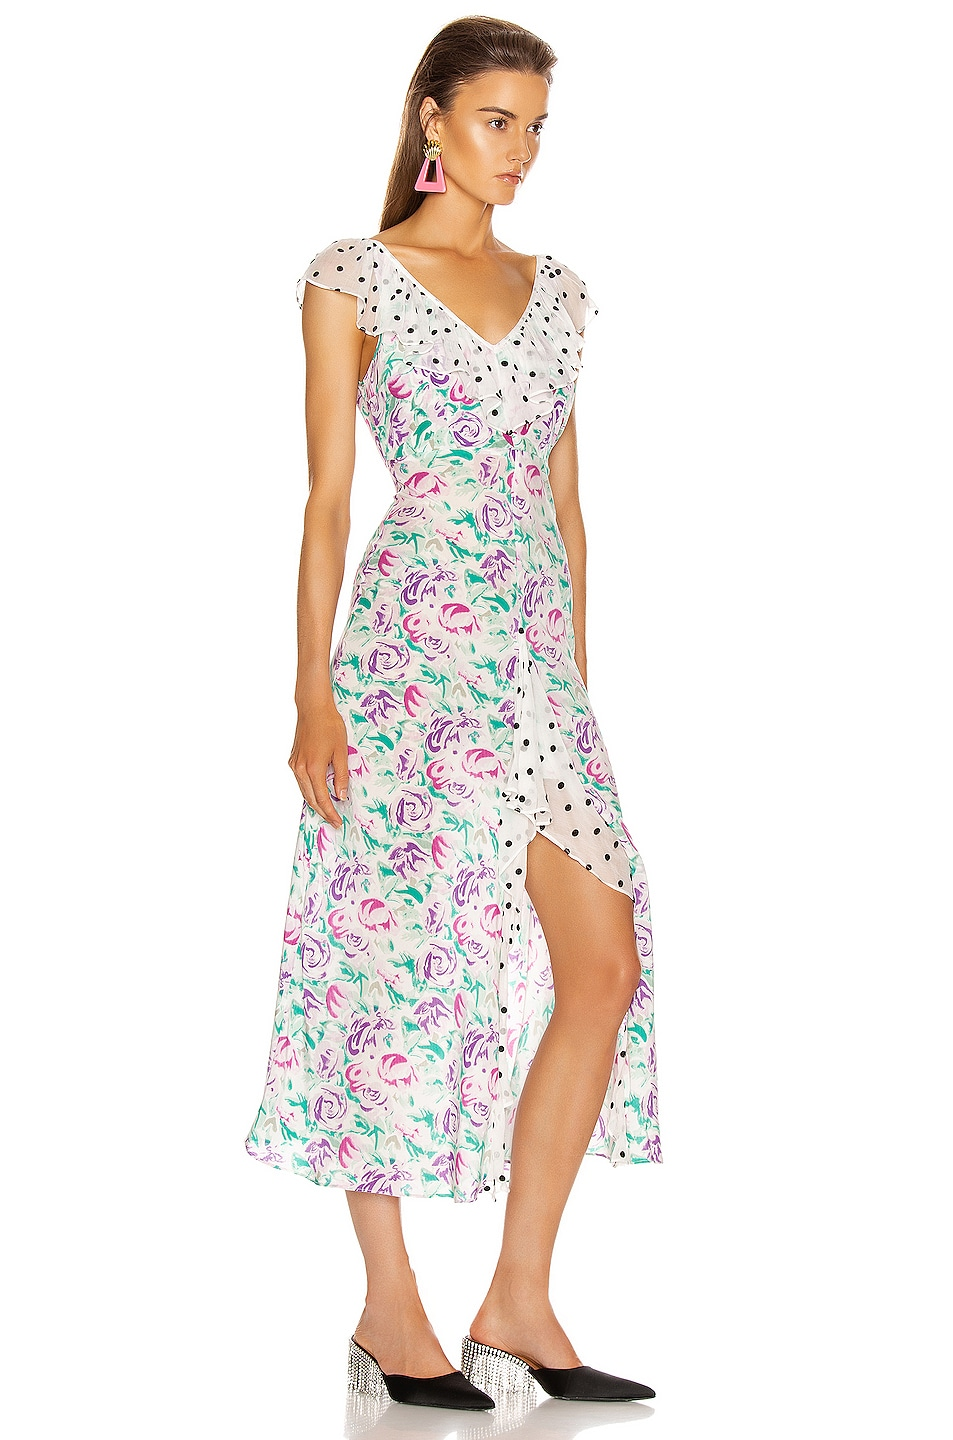 Image 2 of RIXO Antoinette Maxi Dress in Polka Dot Italian Floral & Pink Teal